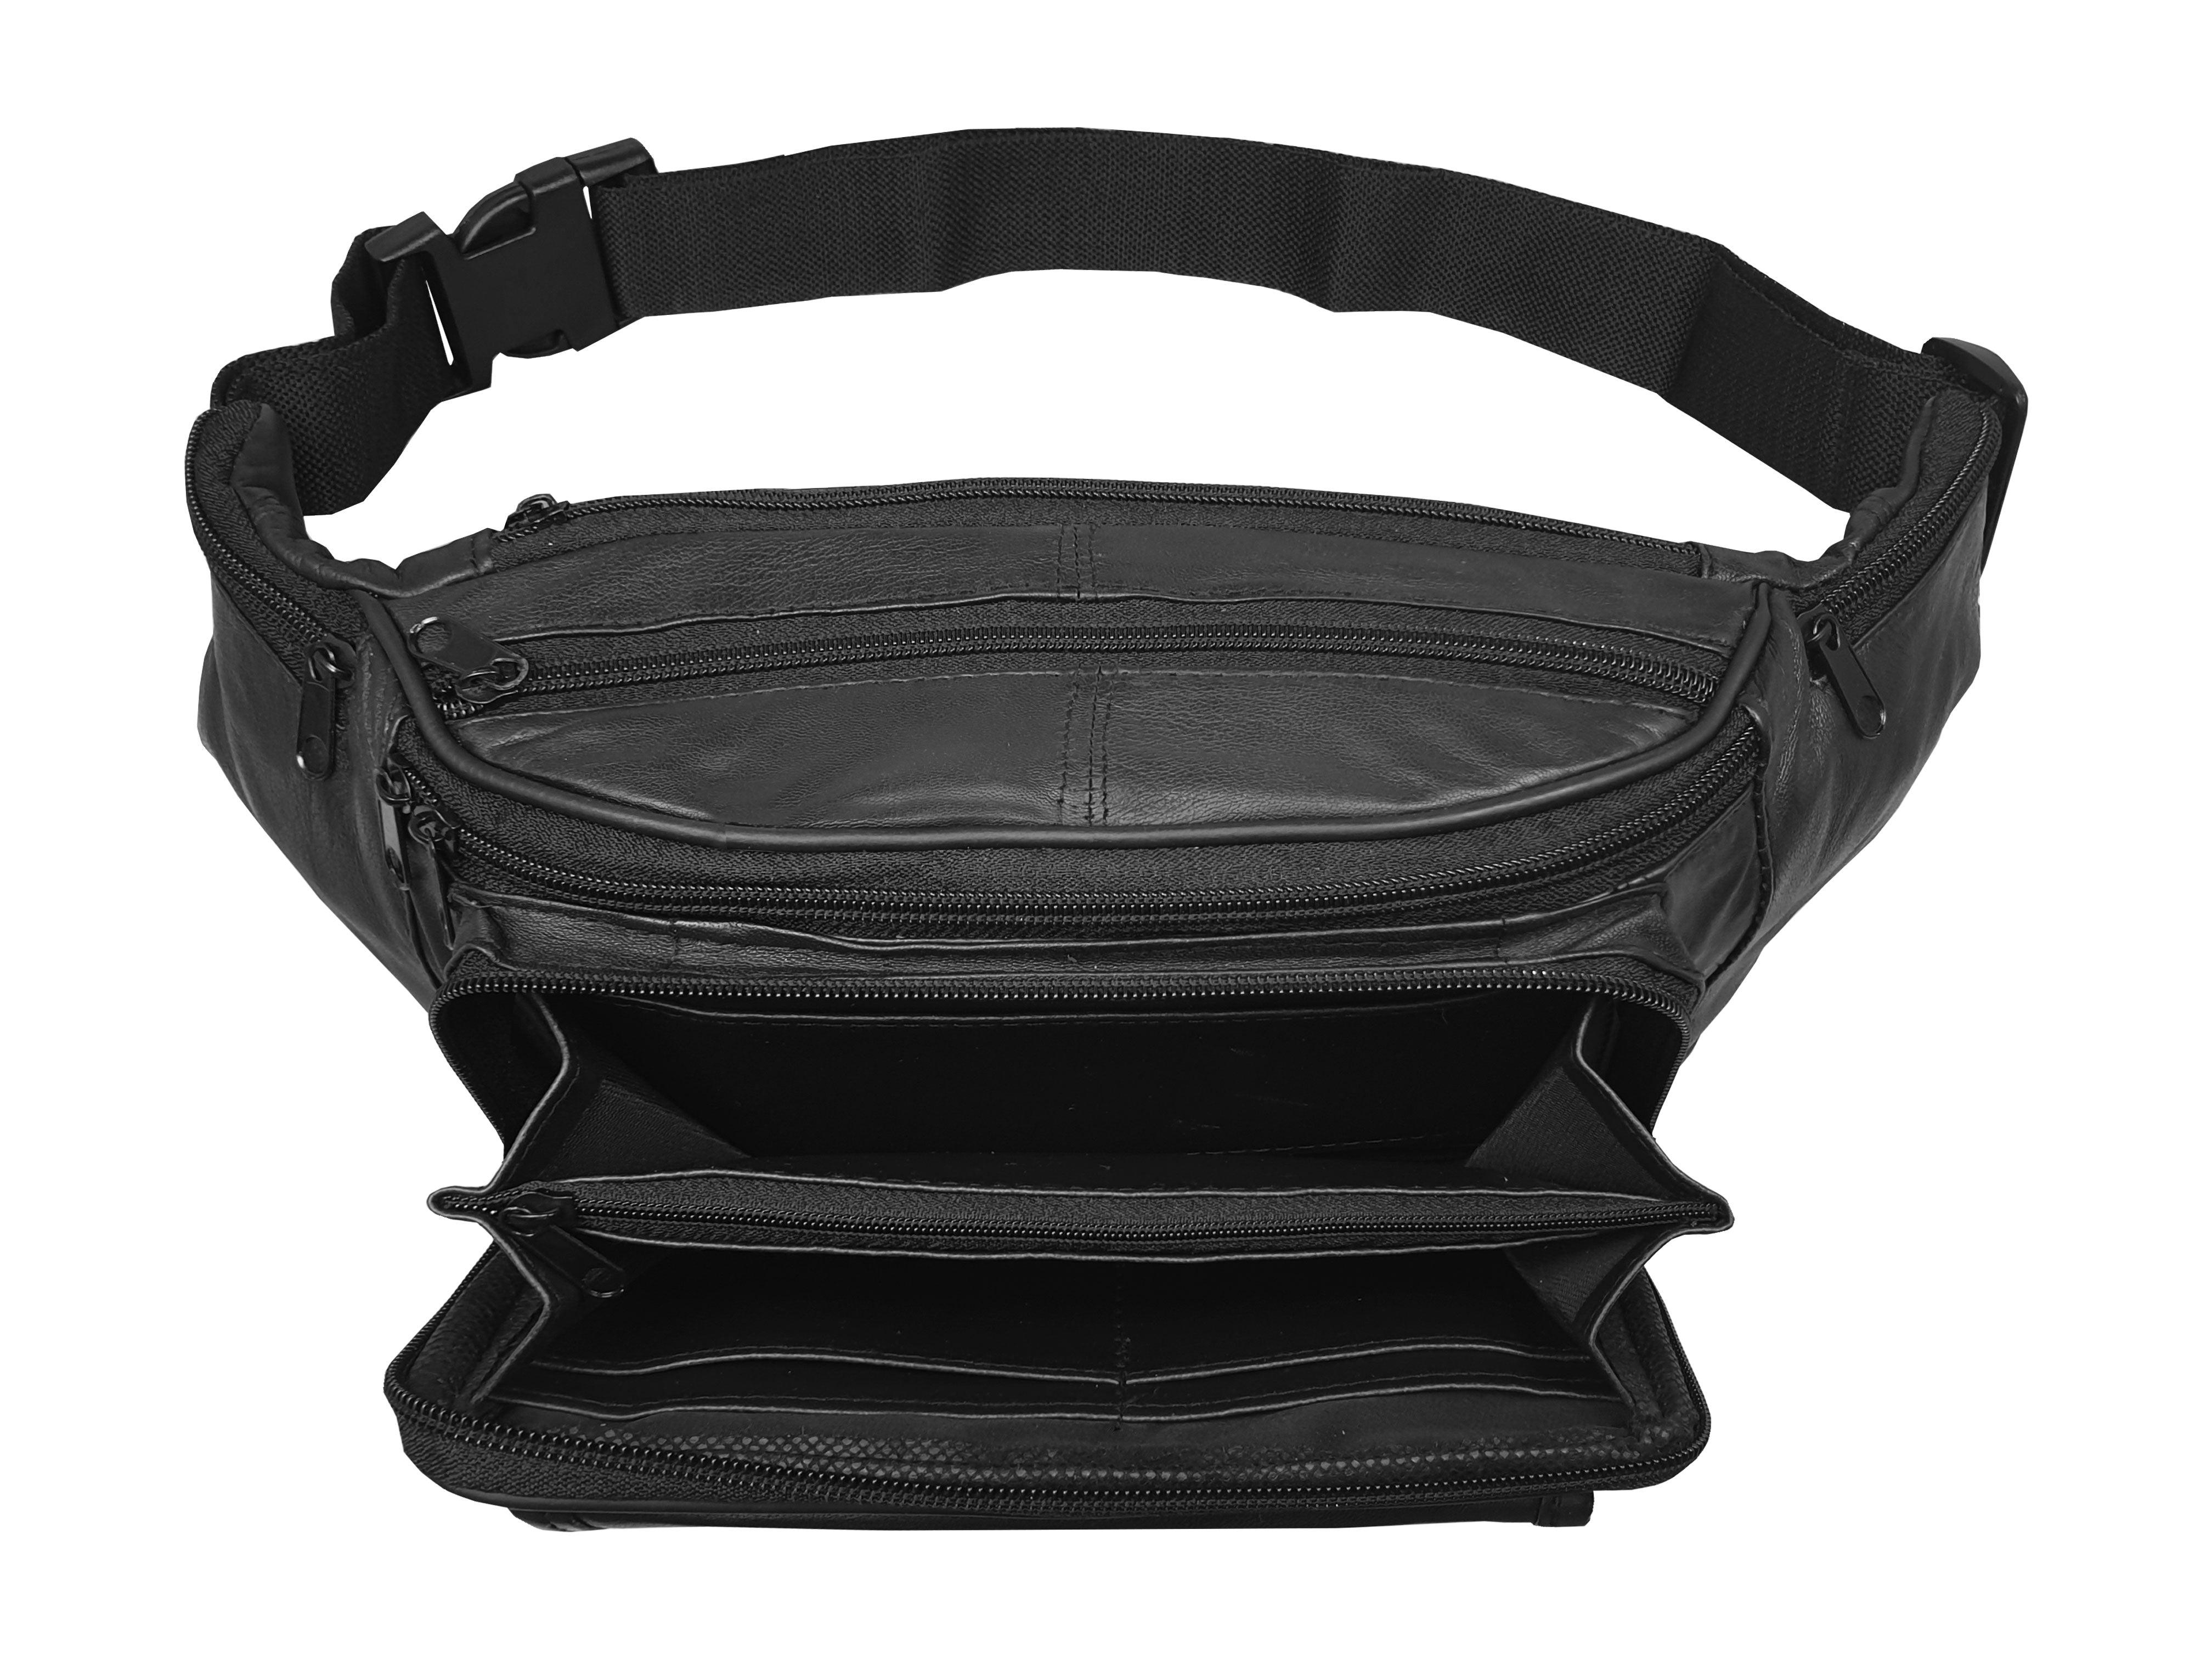 Real Leather Travel Bumbag, Extra Large 35-51 inch Waist, Heavy Duty